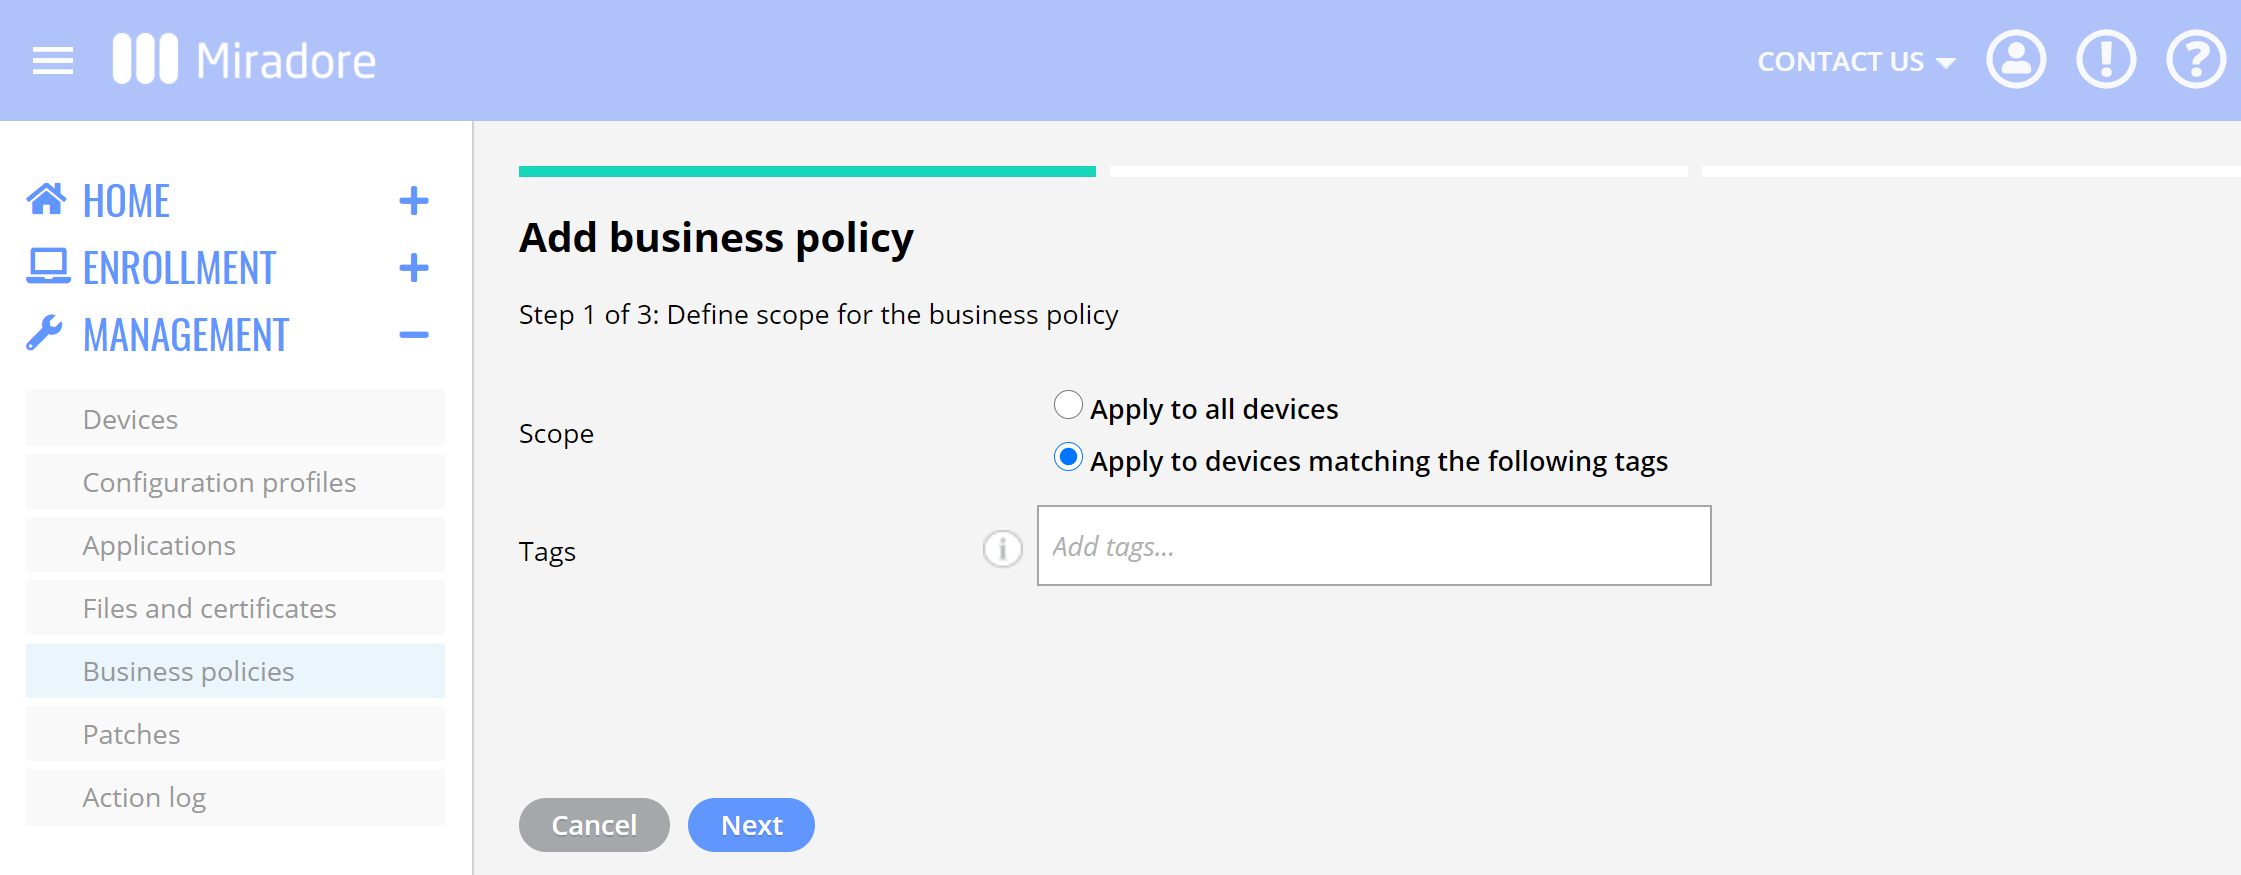 Define scope for business policy